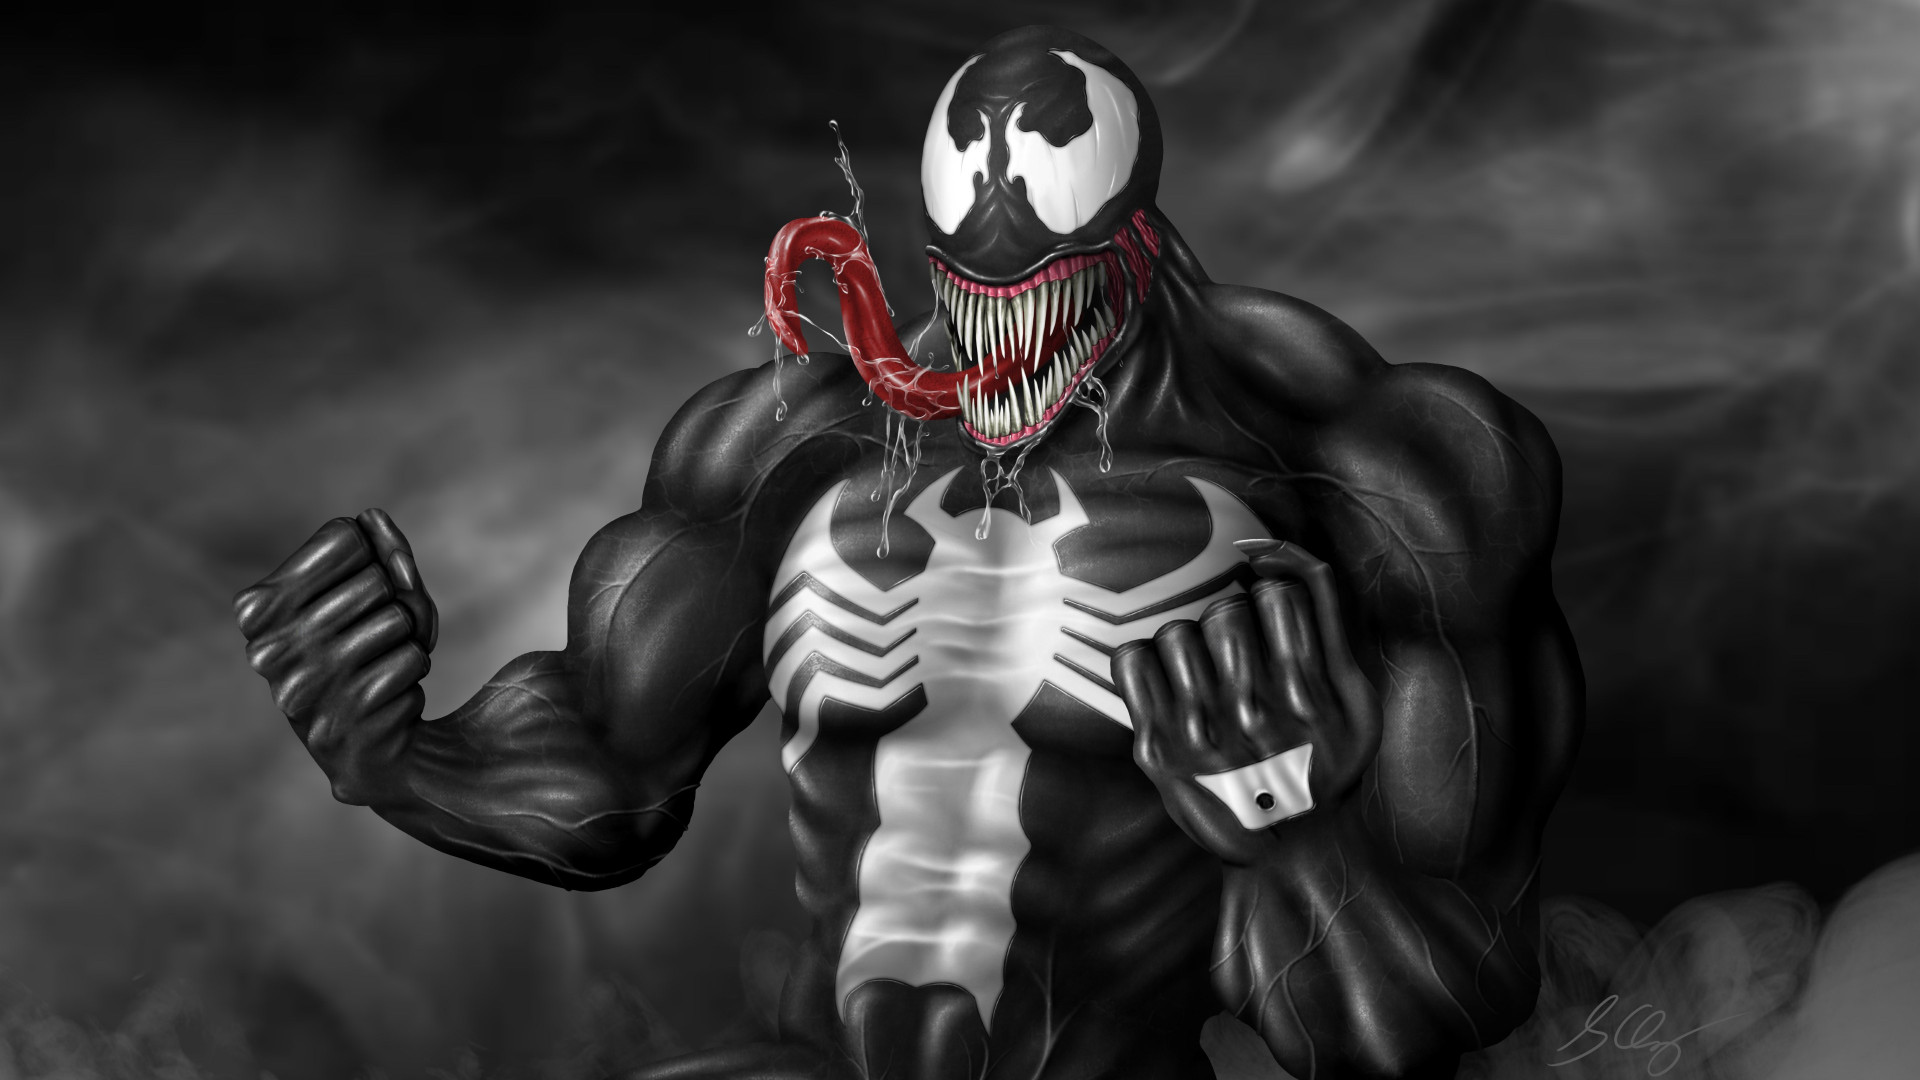 Venom fan art wallpaper 1920x1080